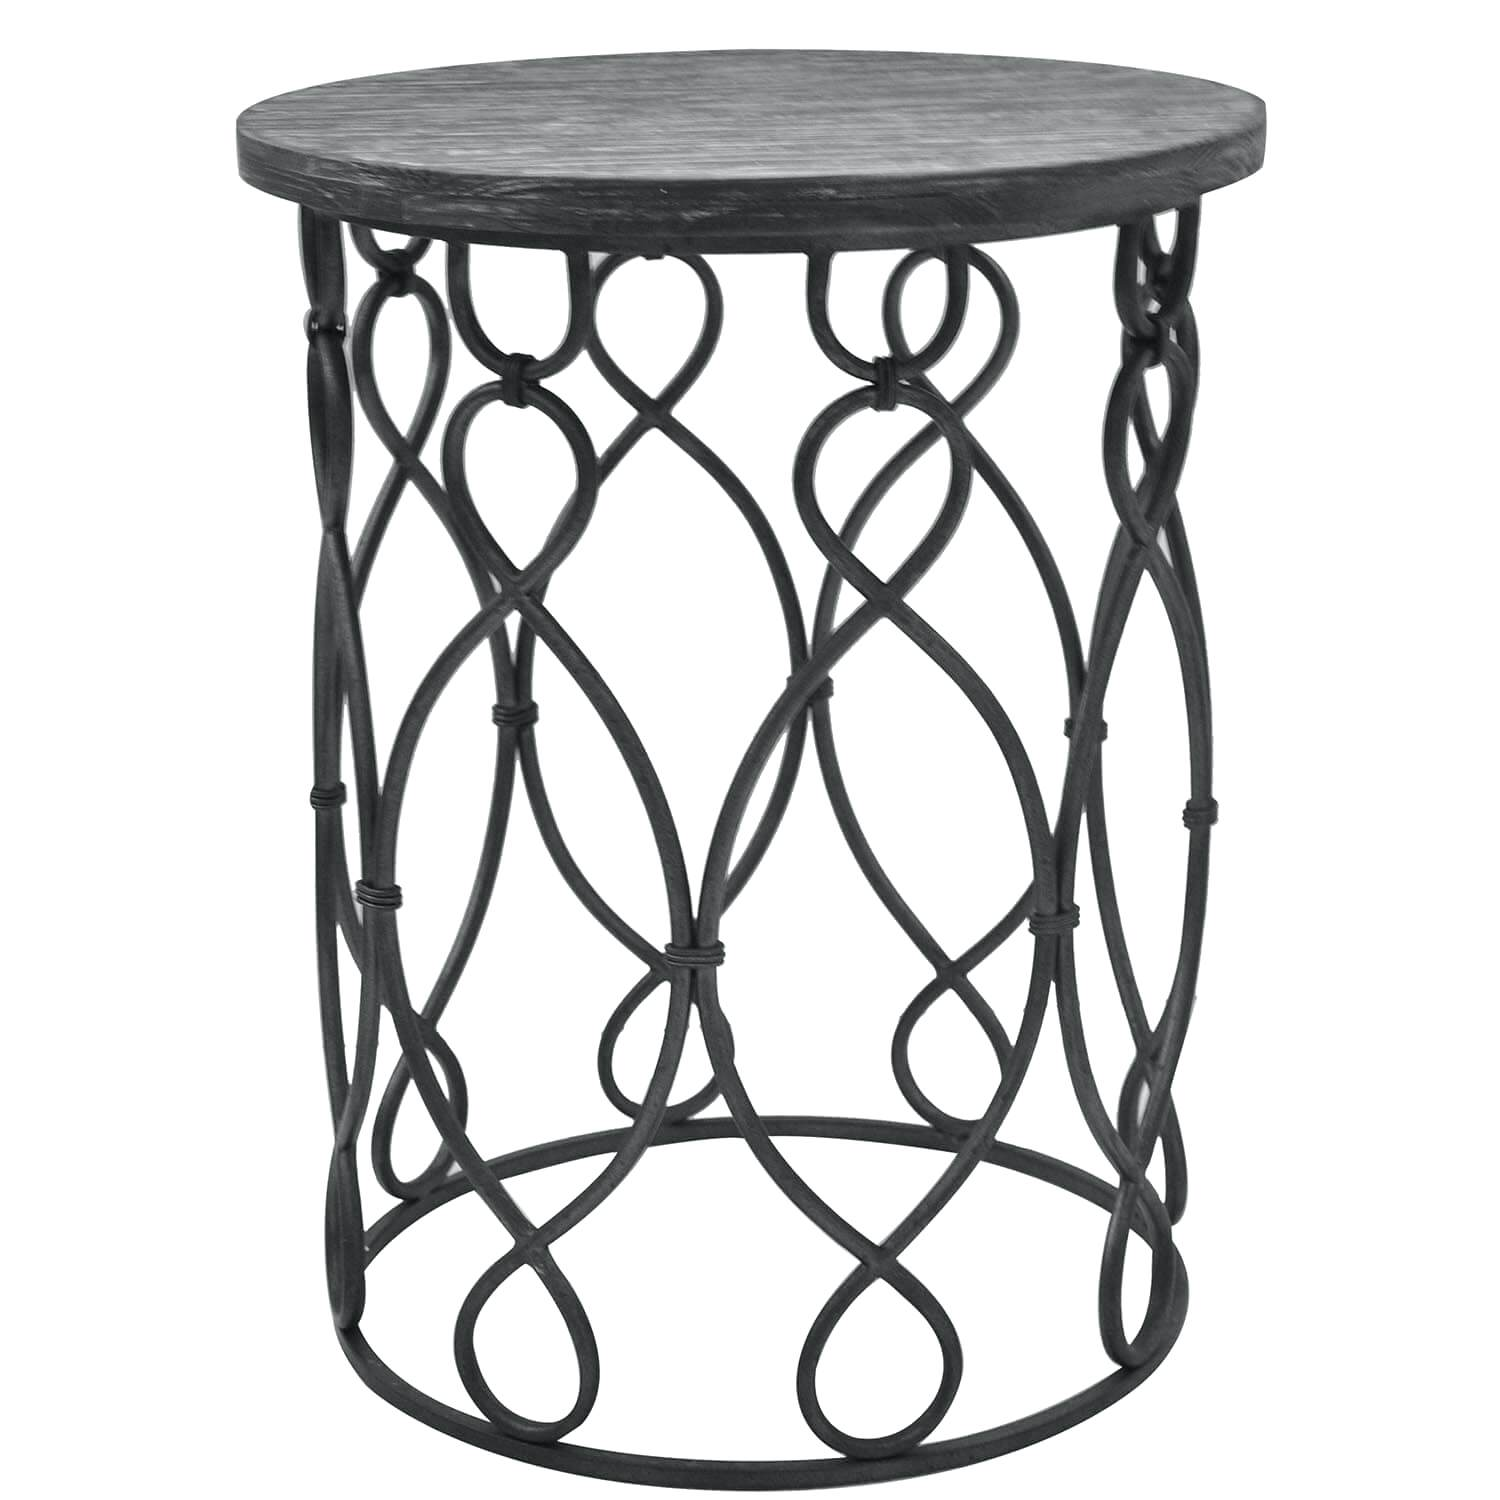 metal accent tables rexim grand junction wood and table black patio round iron coffee stacking backsplash high end lighting entry mirror set outdoor dining kitchen room chairs